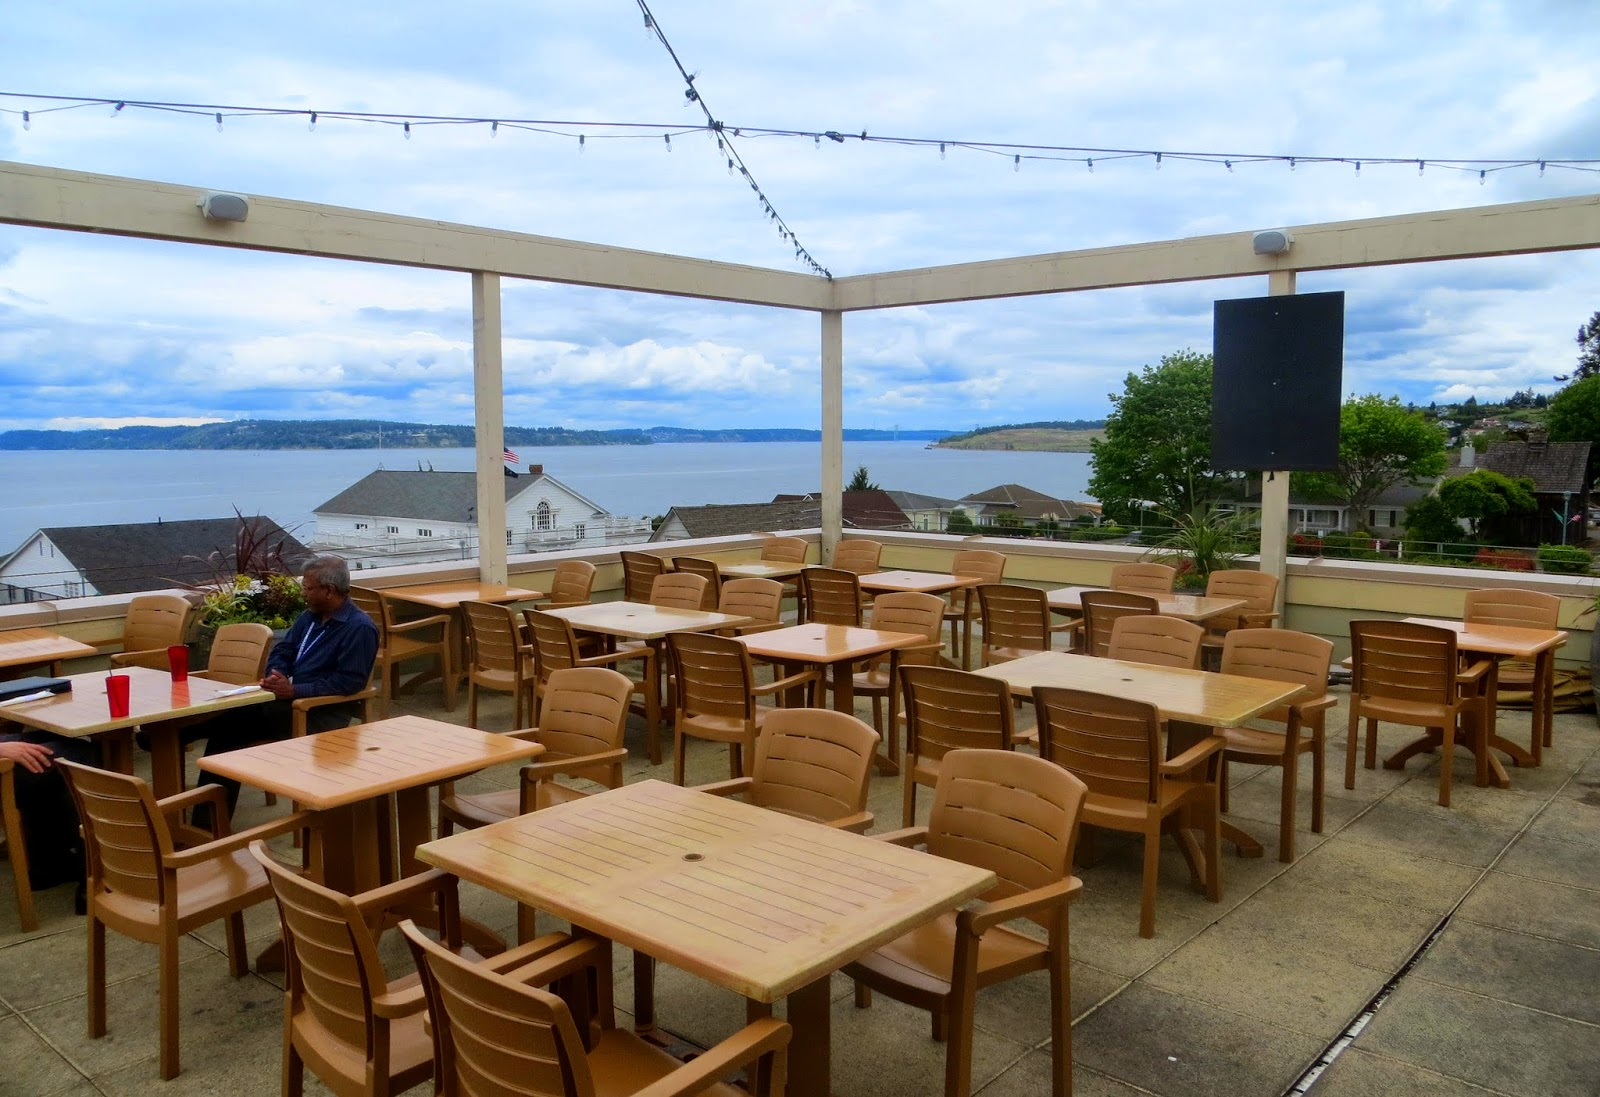 2164 topside bar and grill steilacoom wa 5 17 2013 - Restaurant bar and grill ...